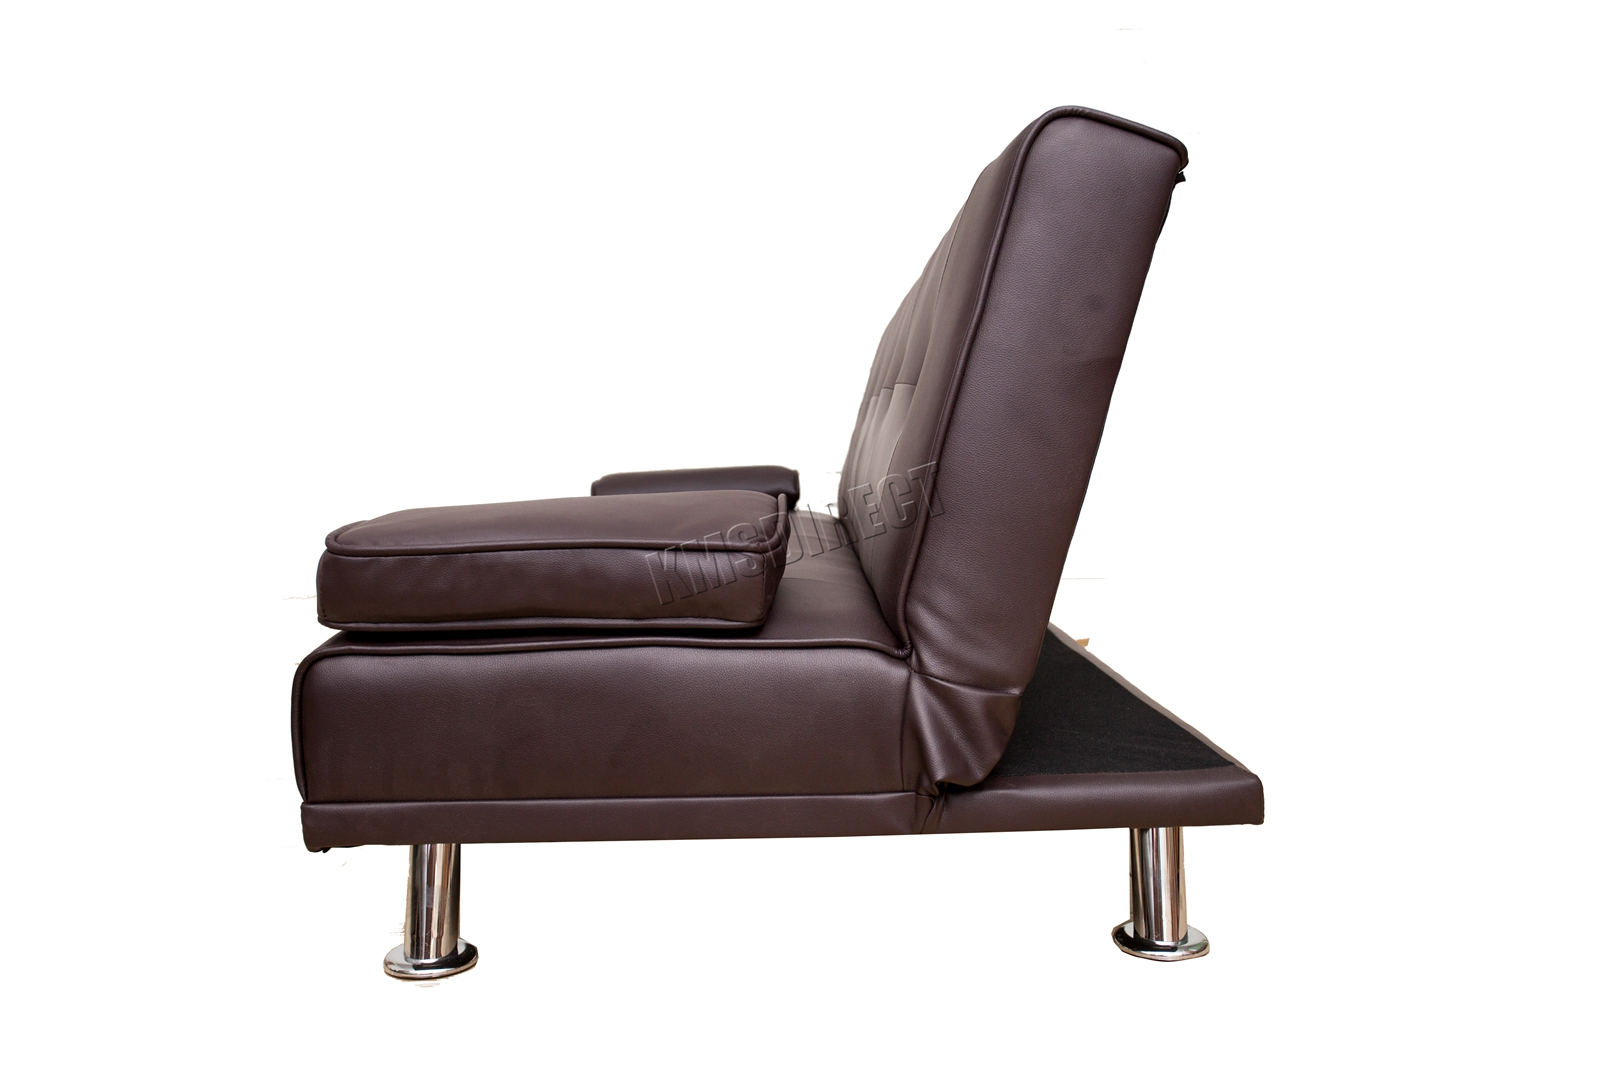 WestWood-Faux-Leather-Manhattan-Sofa-Bed-recliner-3-Seater-Modern-Luxury-Design thumbnail 28